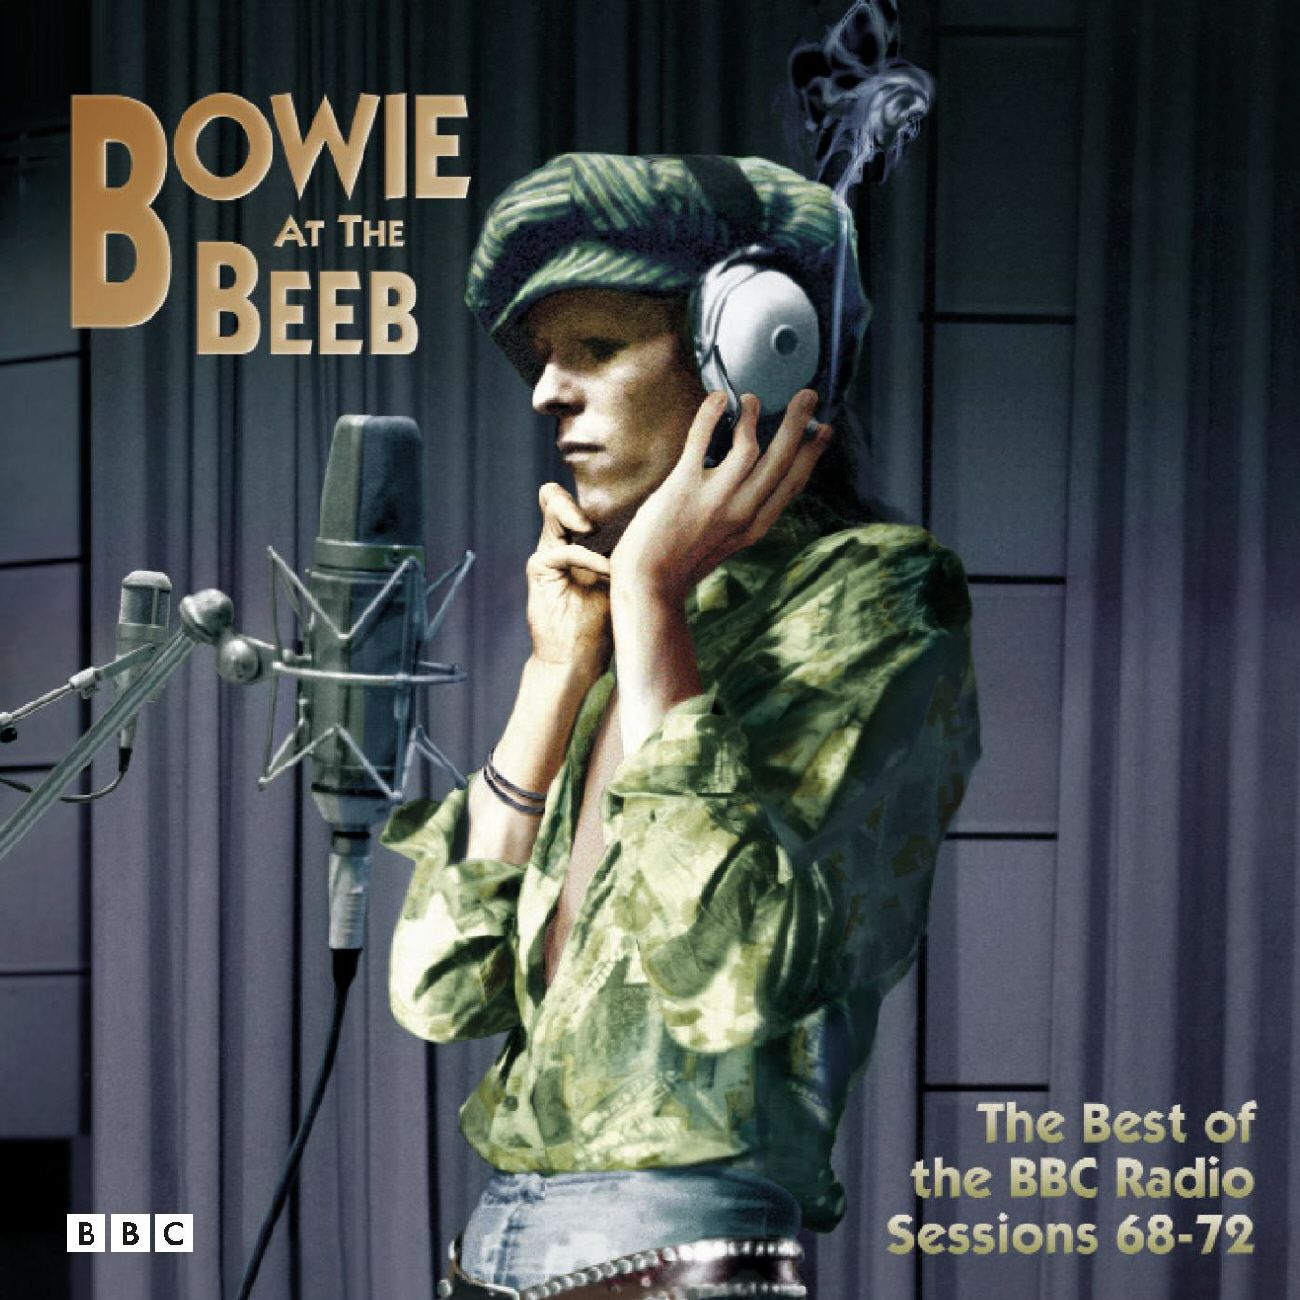 Bowie at The Beeb (The best of the BBC sessions 68-72)